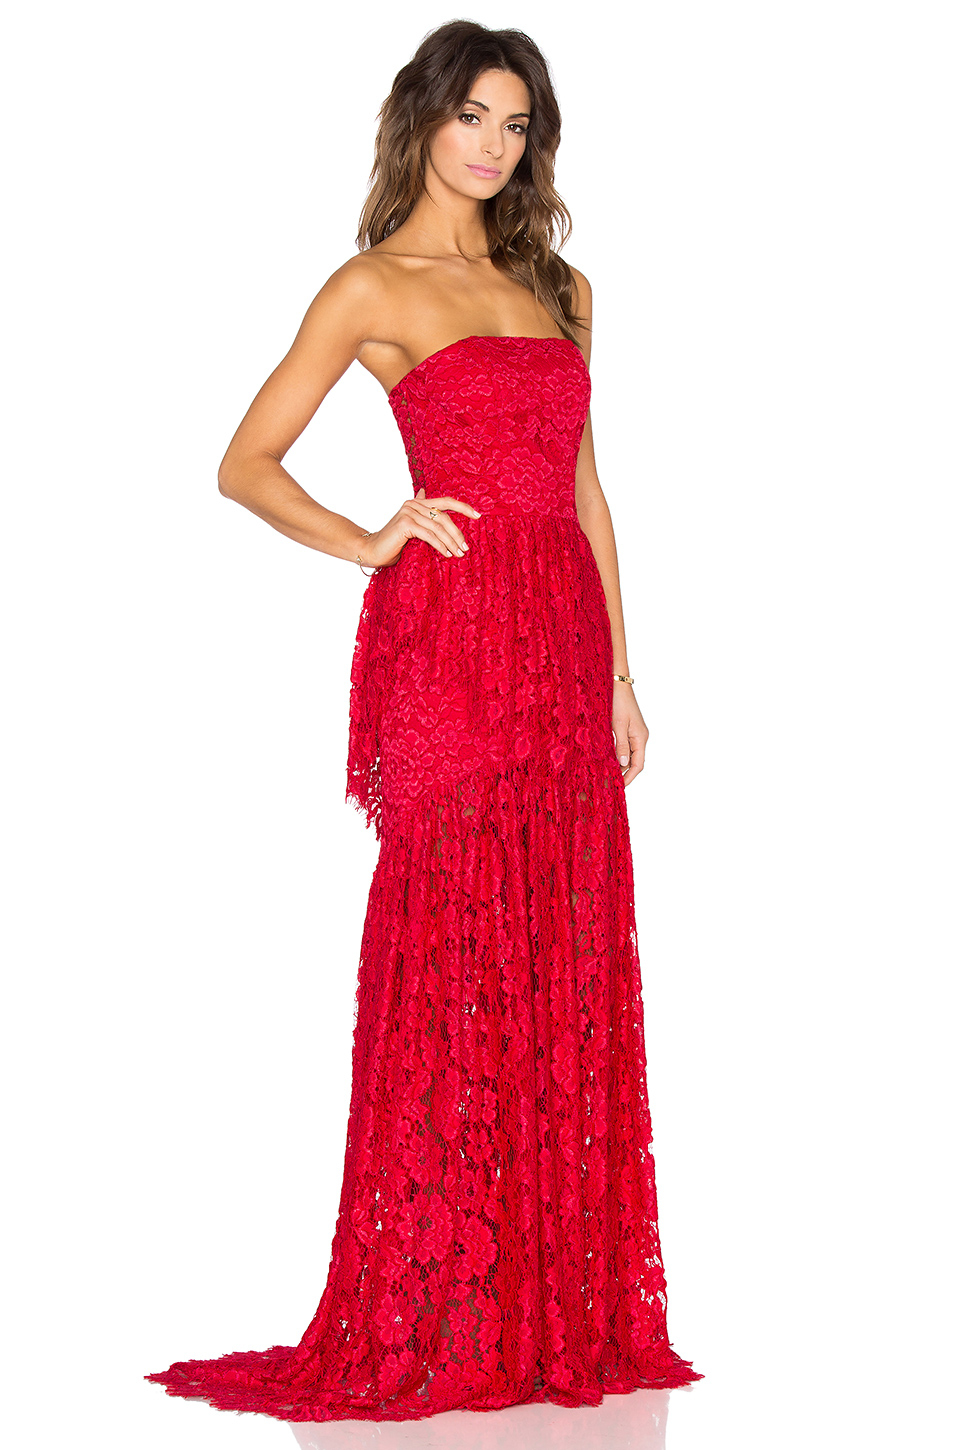 Alexis Sylvia Maxi Dress in Red | Lyst